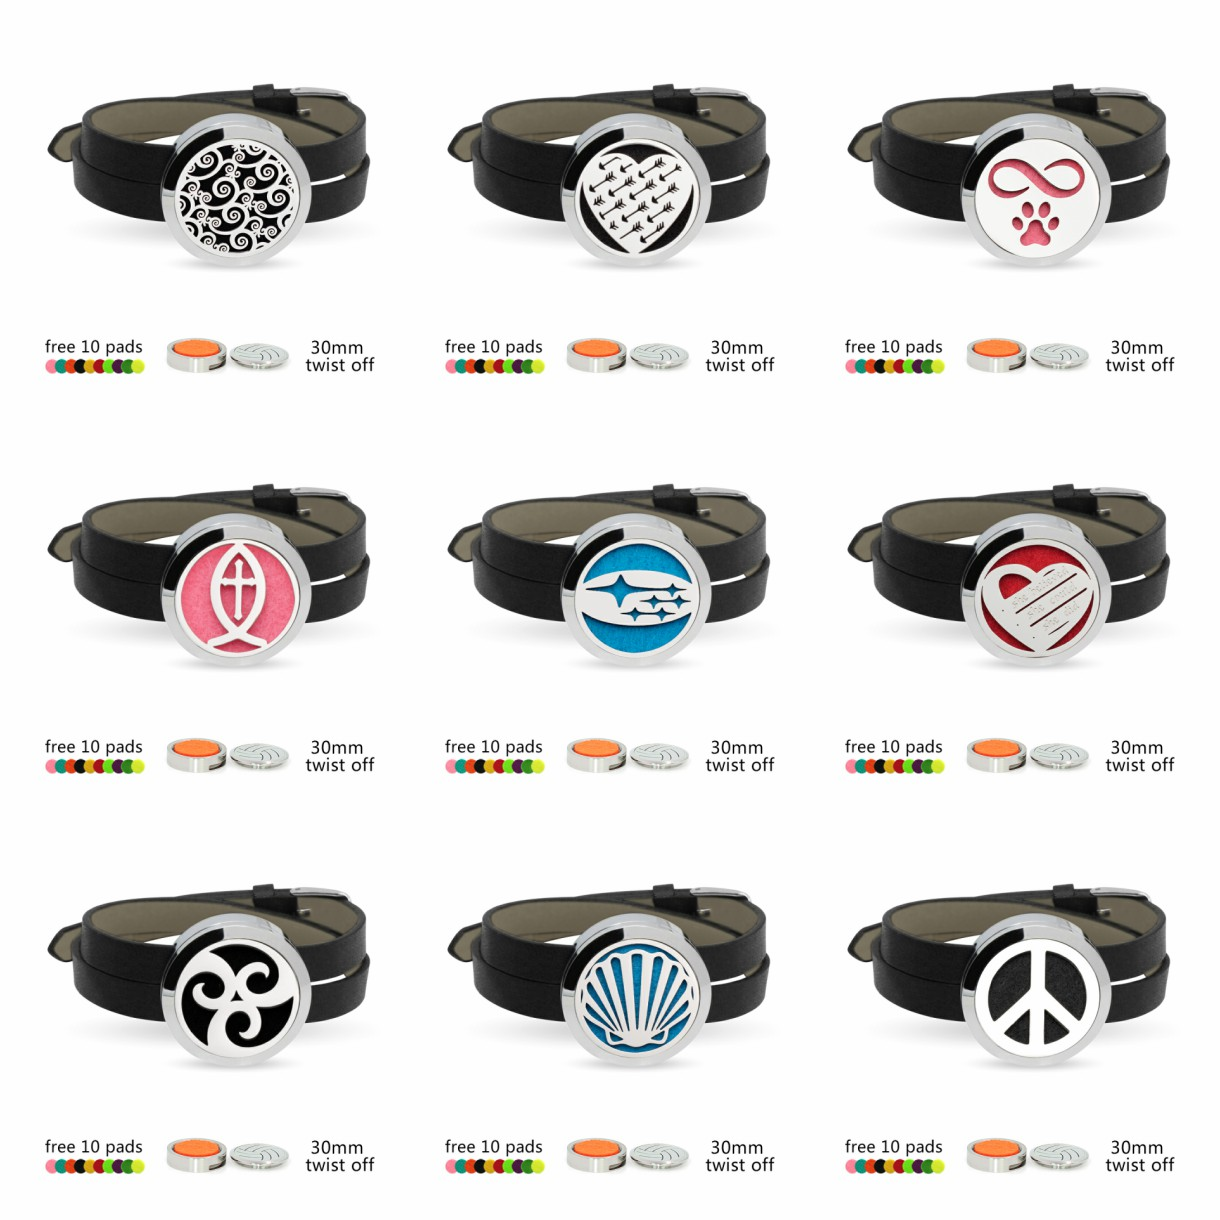 Pu Leather Stainless Steel Aroma Essential Oil Diffuser Locket Bracelet+10pads Wristbands Aromatherapy